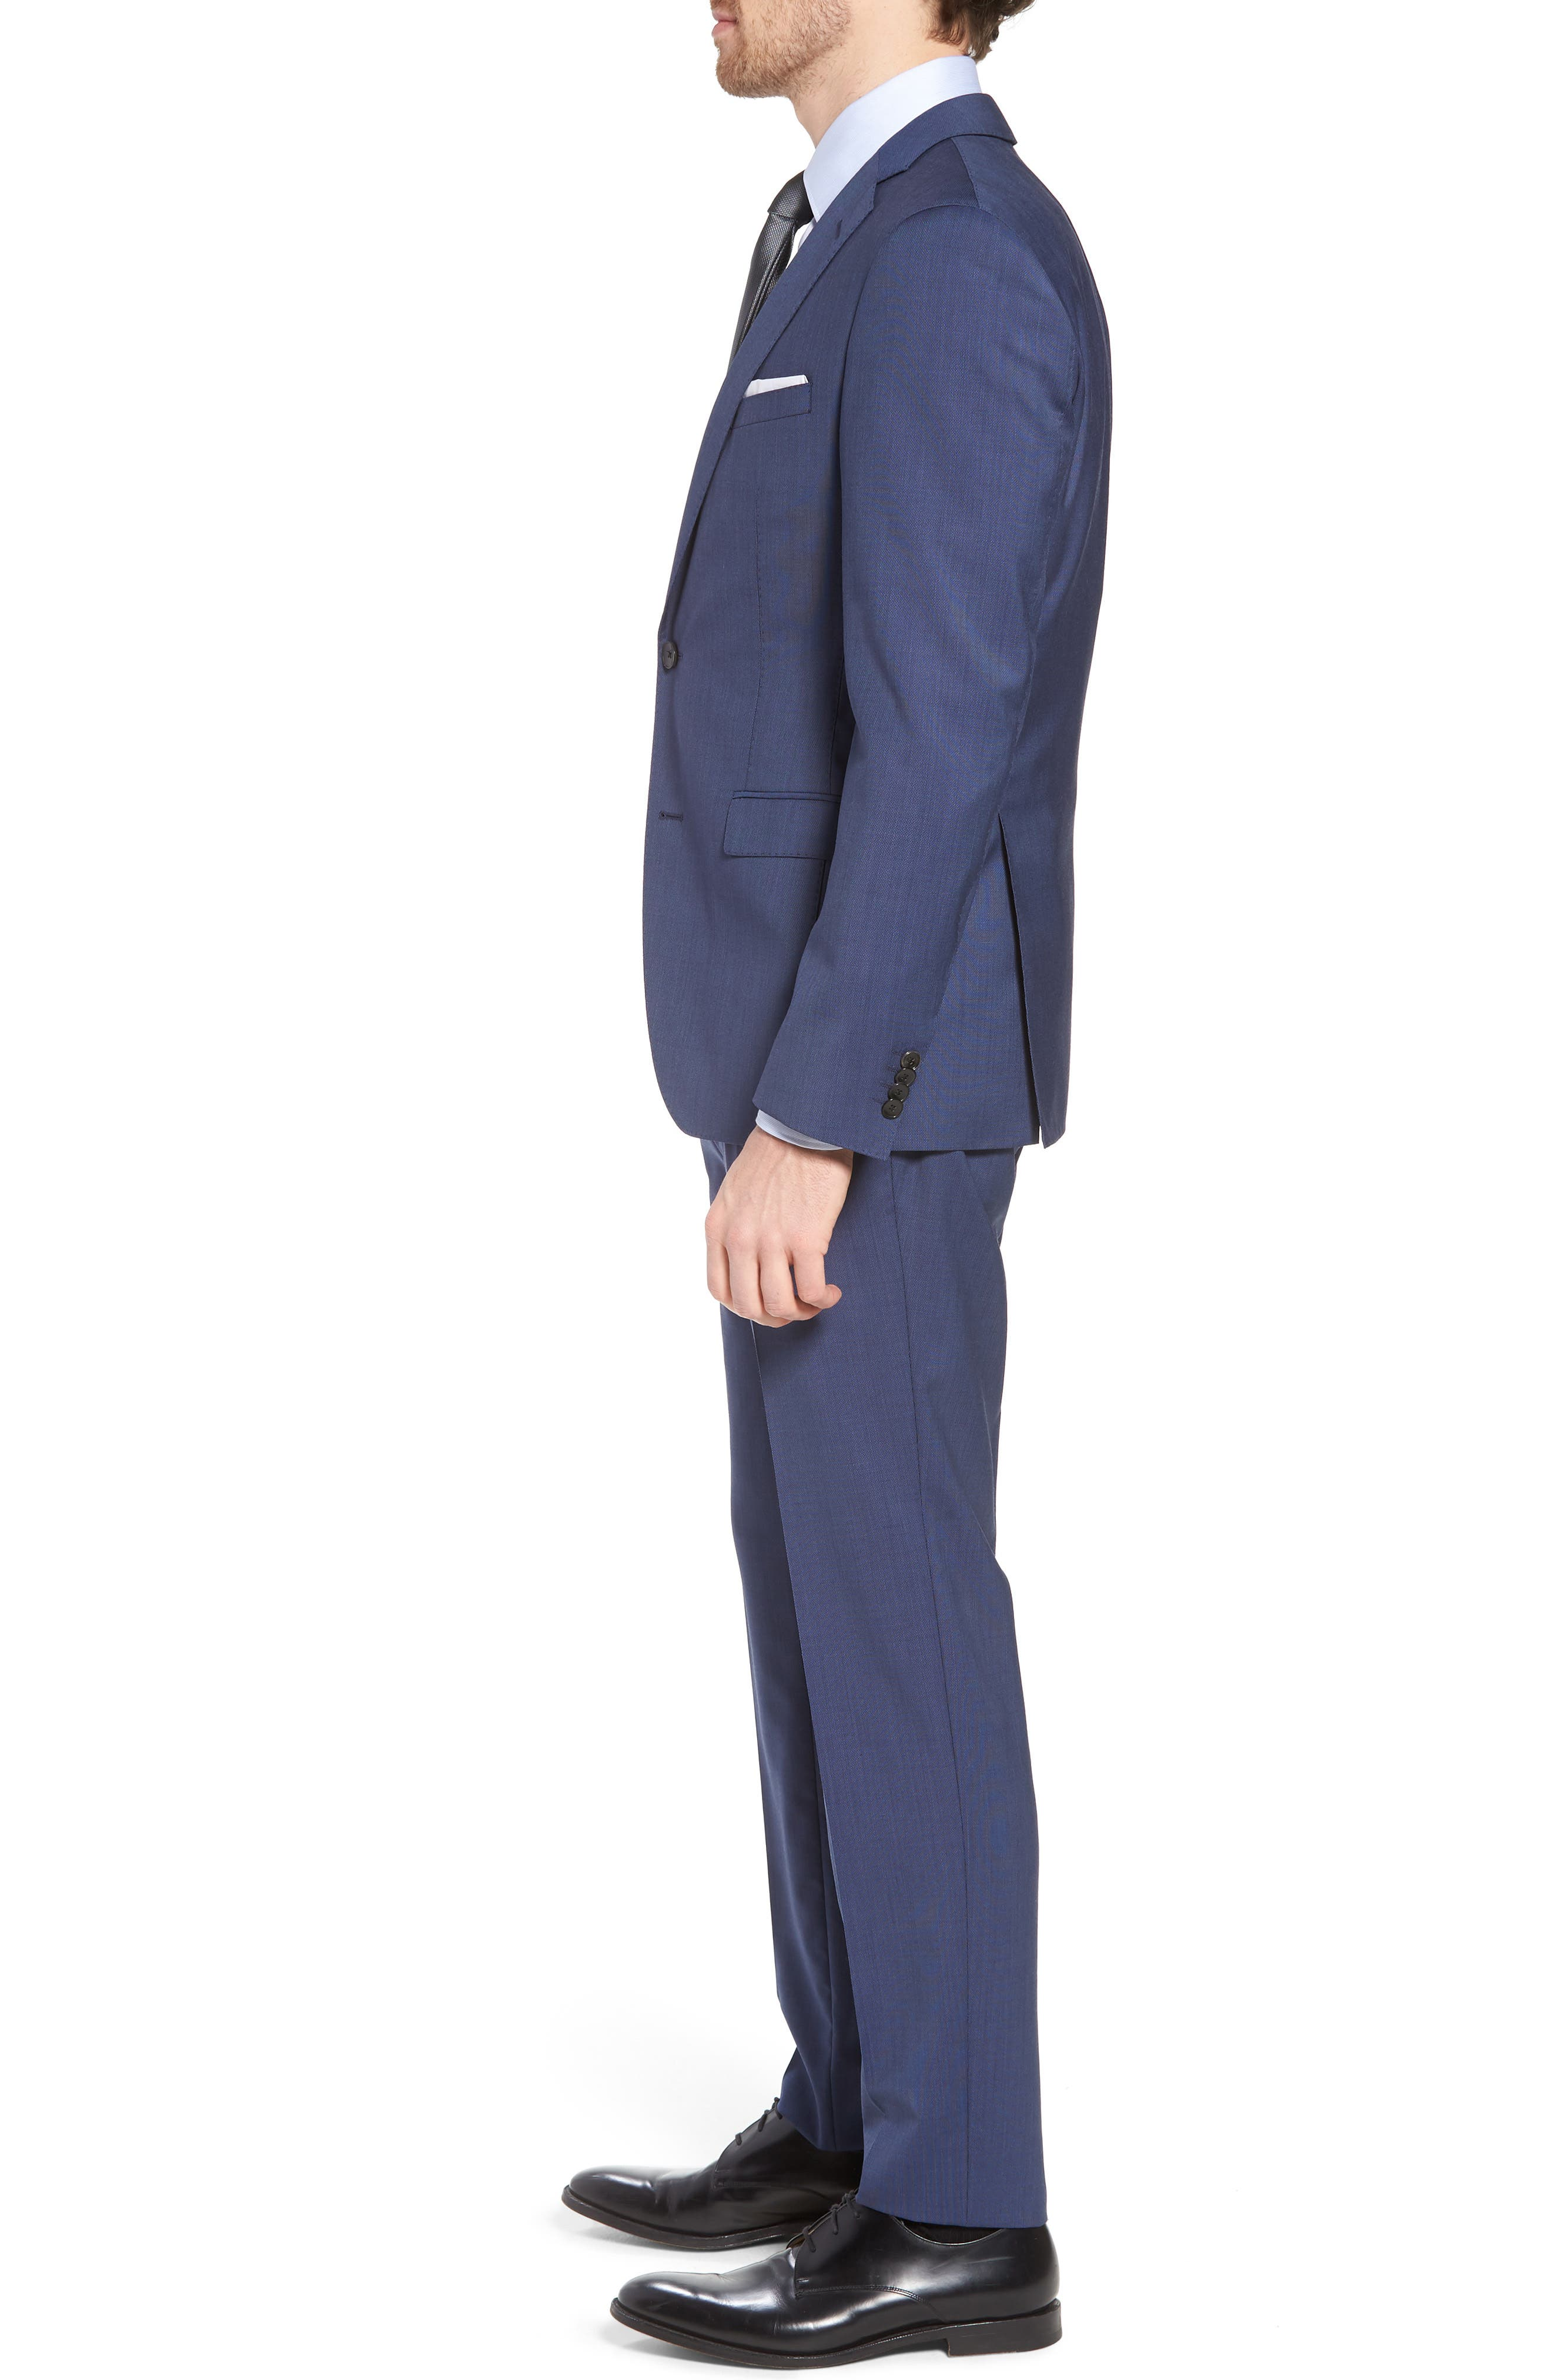 Reyno/Wave Extra Trim Fit Solid Wool Suit,                             Alternate thumbnail 3, color,                             400